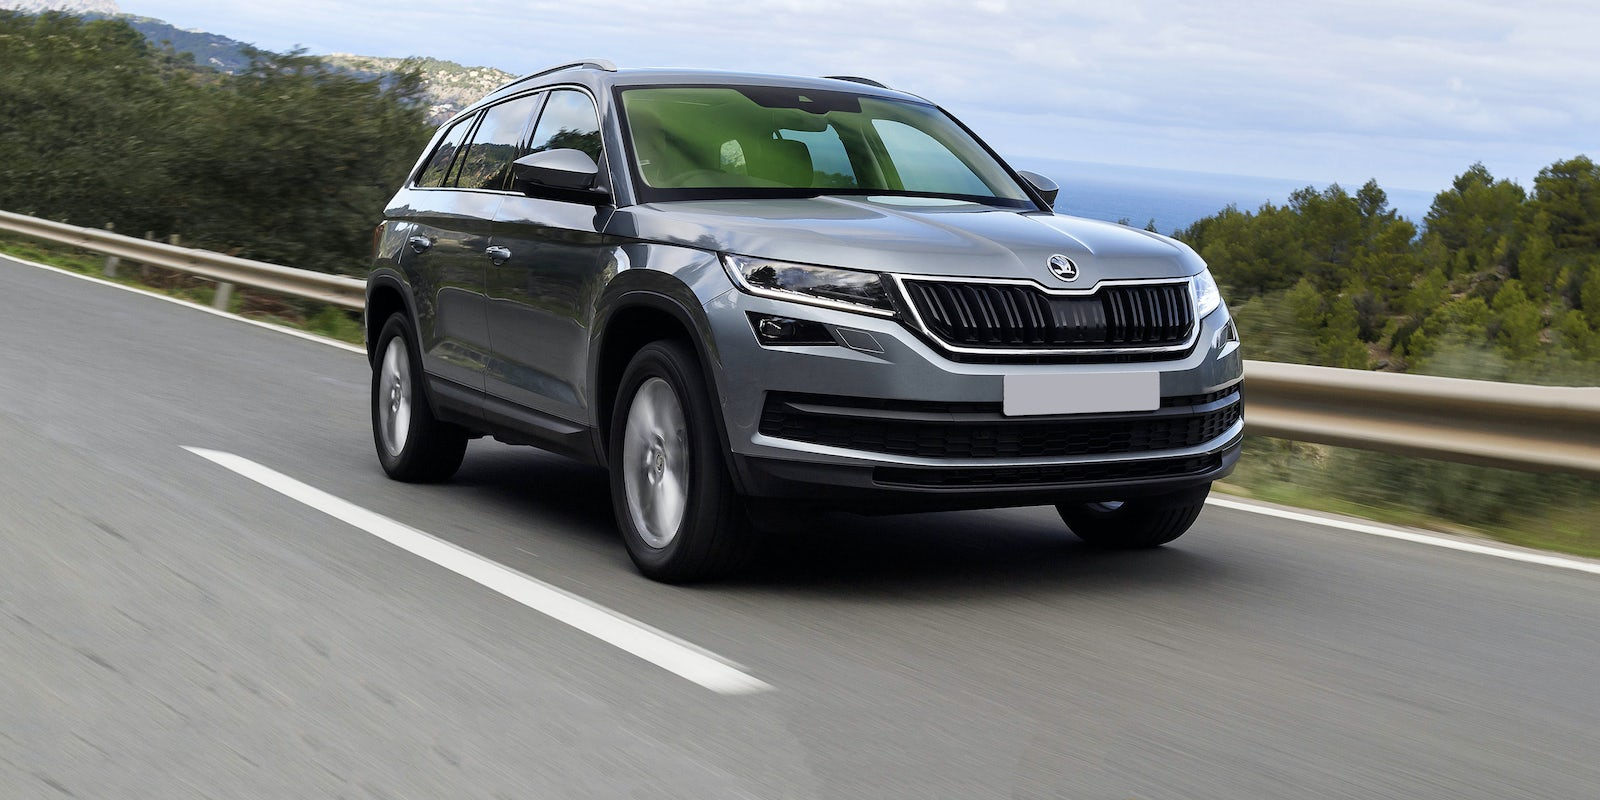 New Skoda Kodiaq Review | carwow